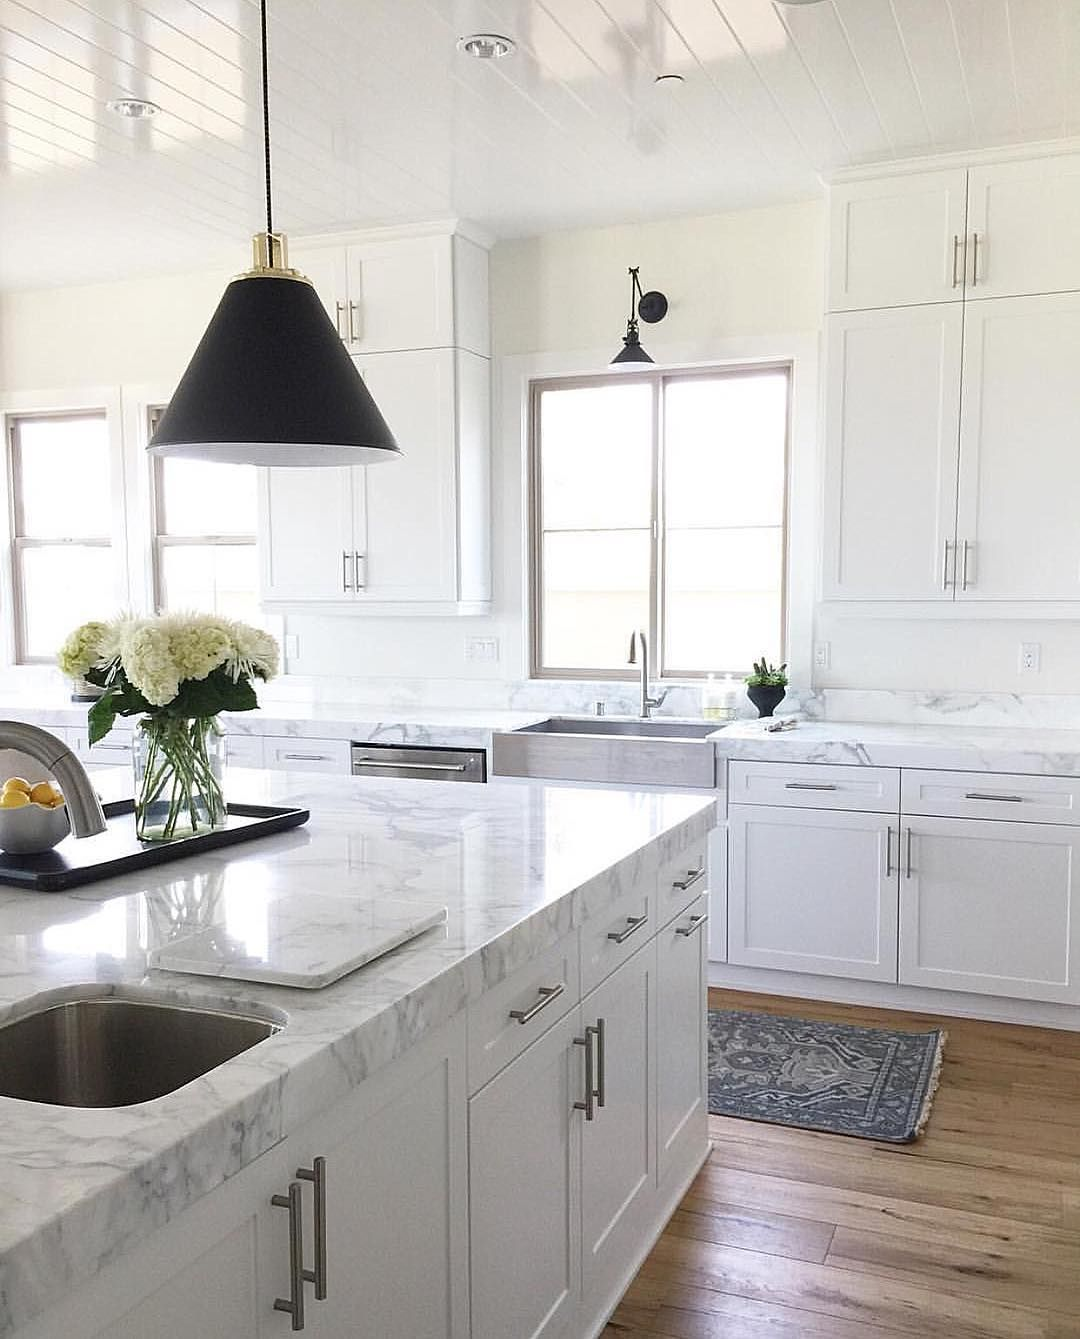 Black Kitchen Units Sale: Stunning Kitchen By @beckiowens! Also, Be Sure And Check Out My Weekend Sale Picks On The Blog